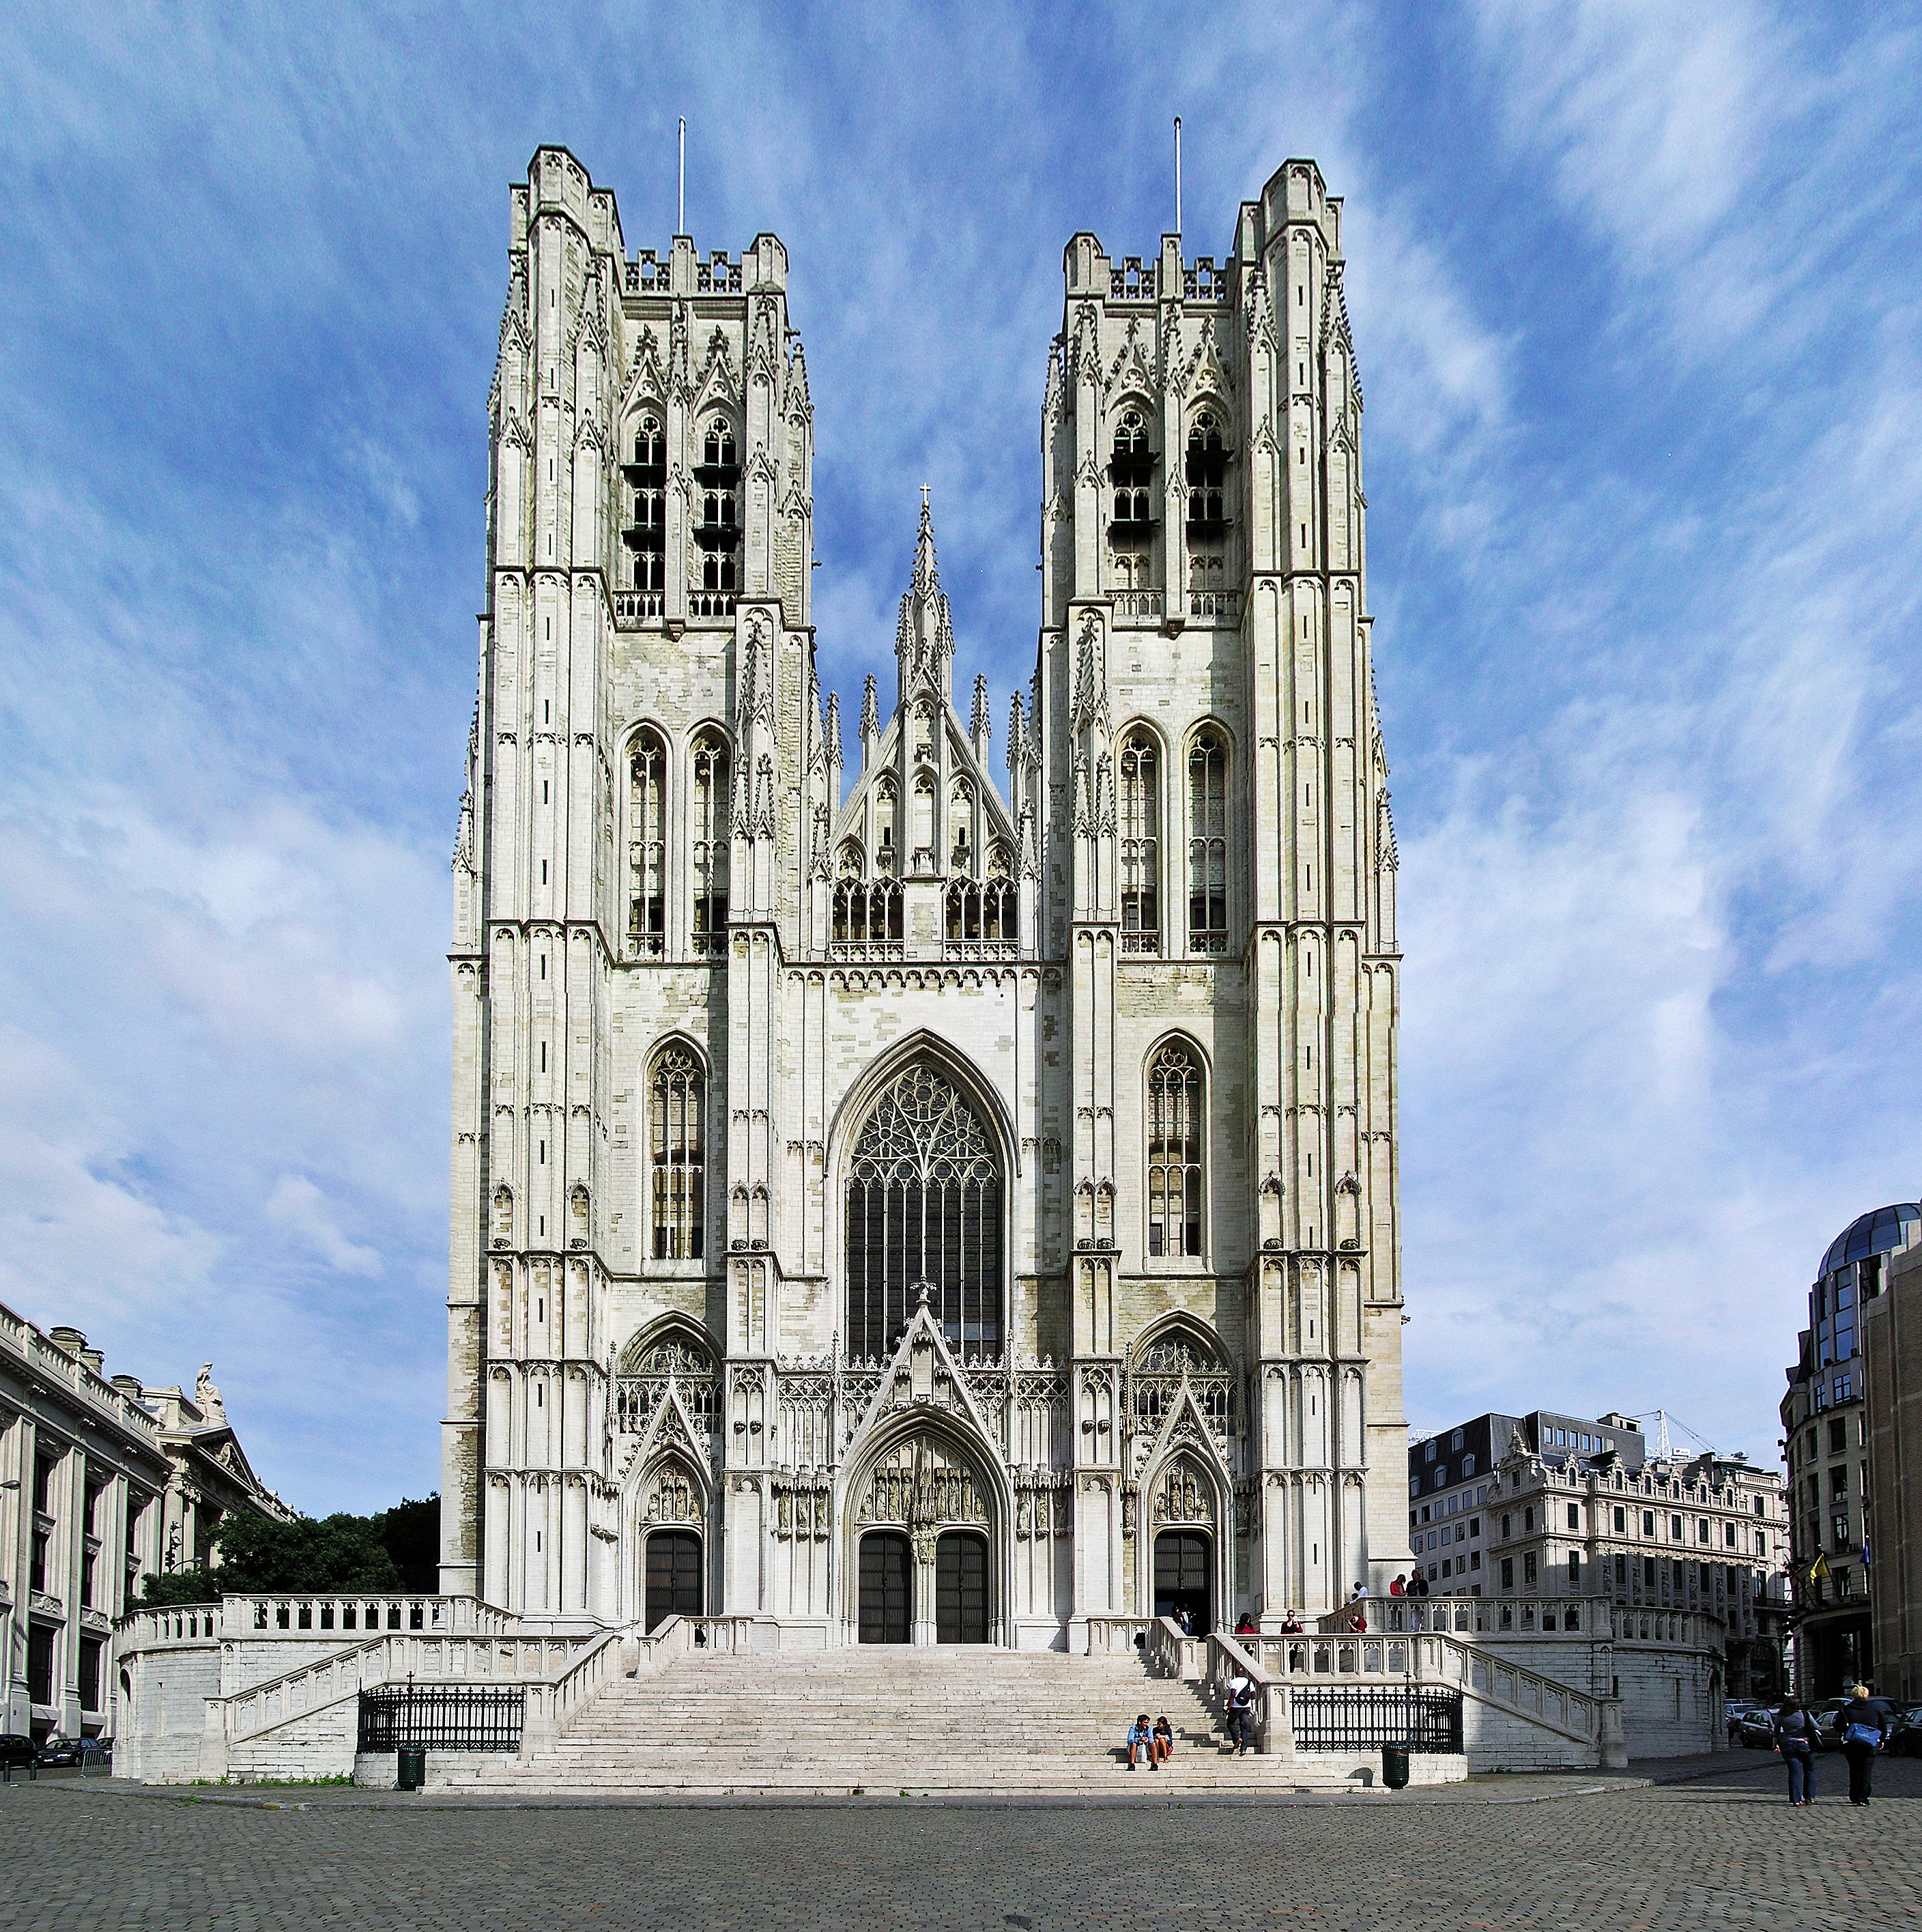 https://upload.wikimedia.org/wikipedia/commons/7/7c/%28Belgium%29_St._Michael_%26_St._Gudula_Cathedral_Tower%2C_Brussels.jpg